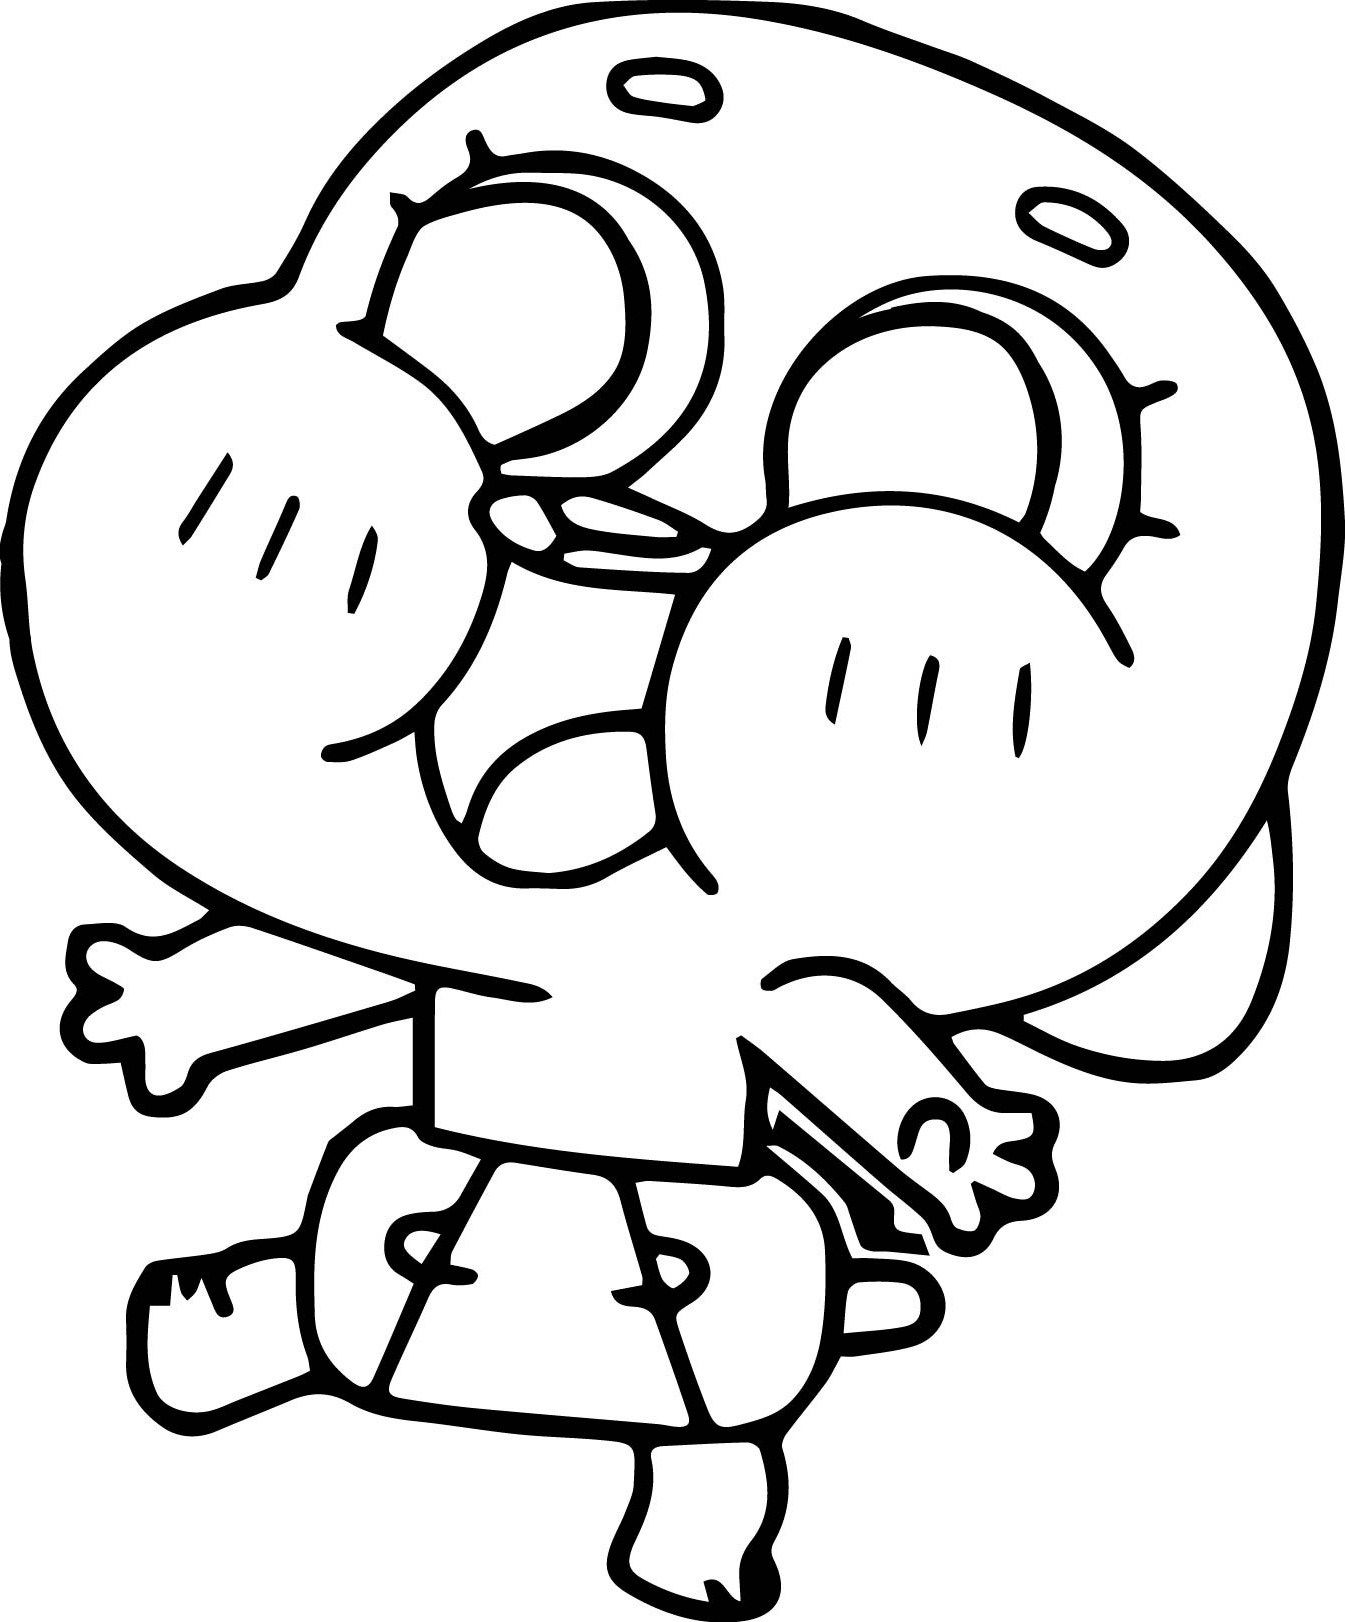 gumball cartoon coloring pages amazing world of gumball coloring pages to print printable pages coloring gumball cartoon